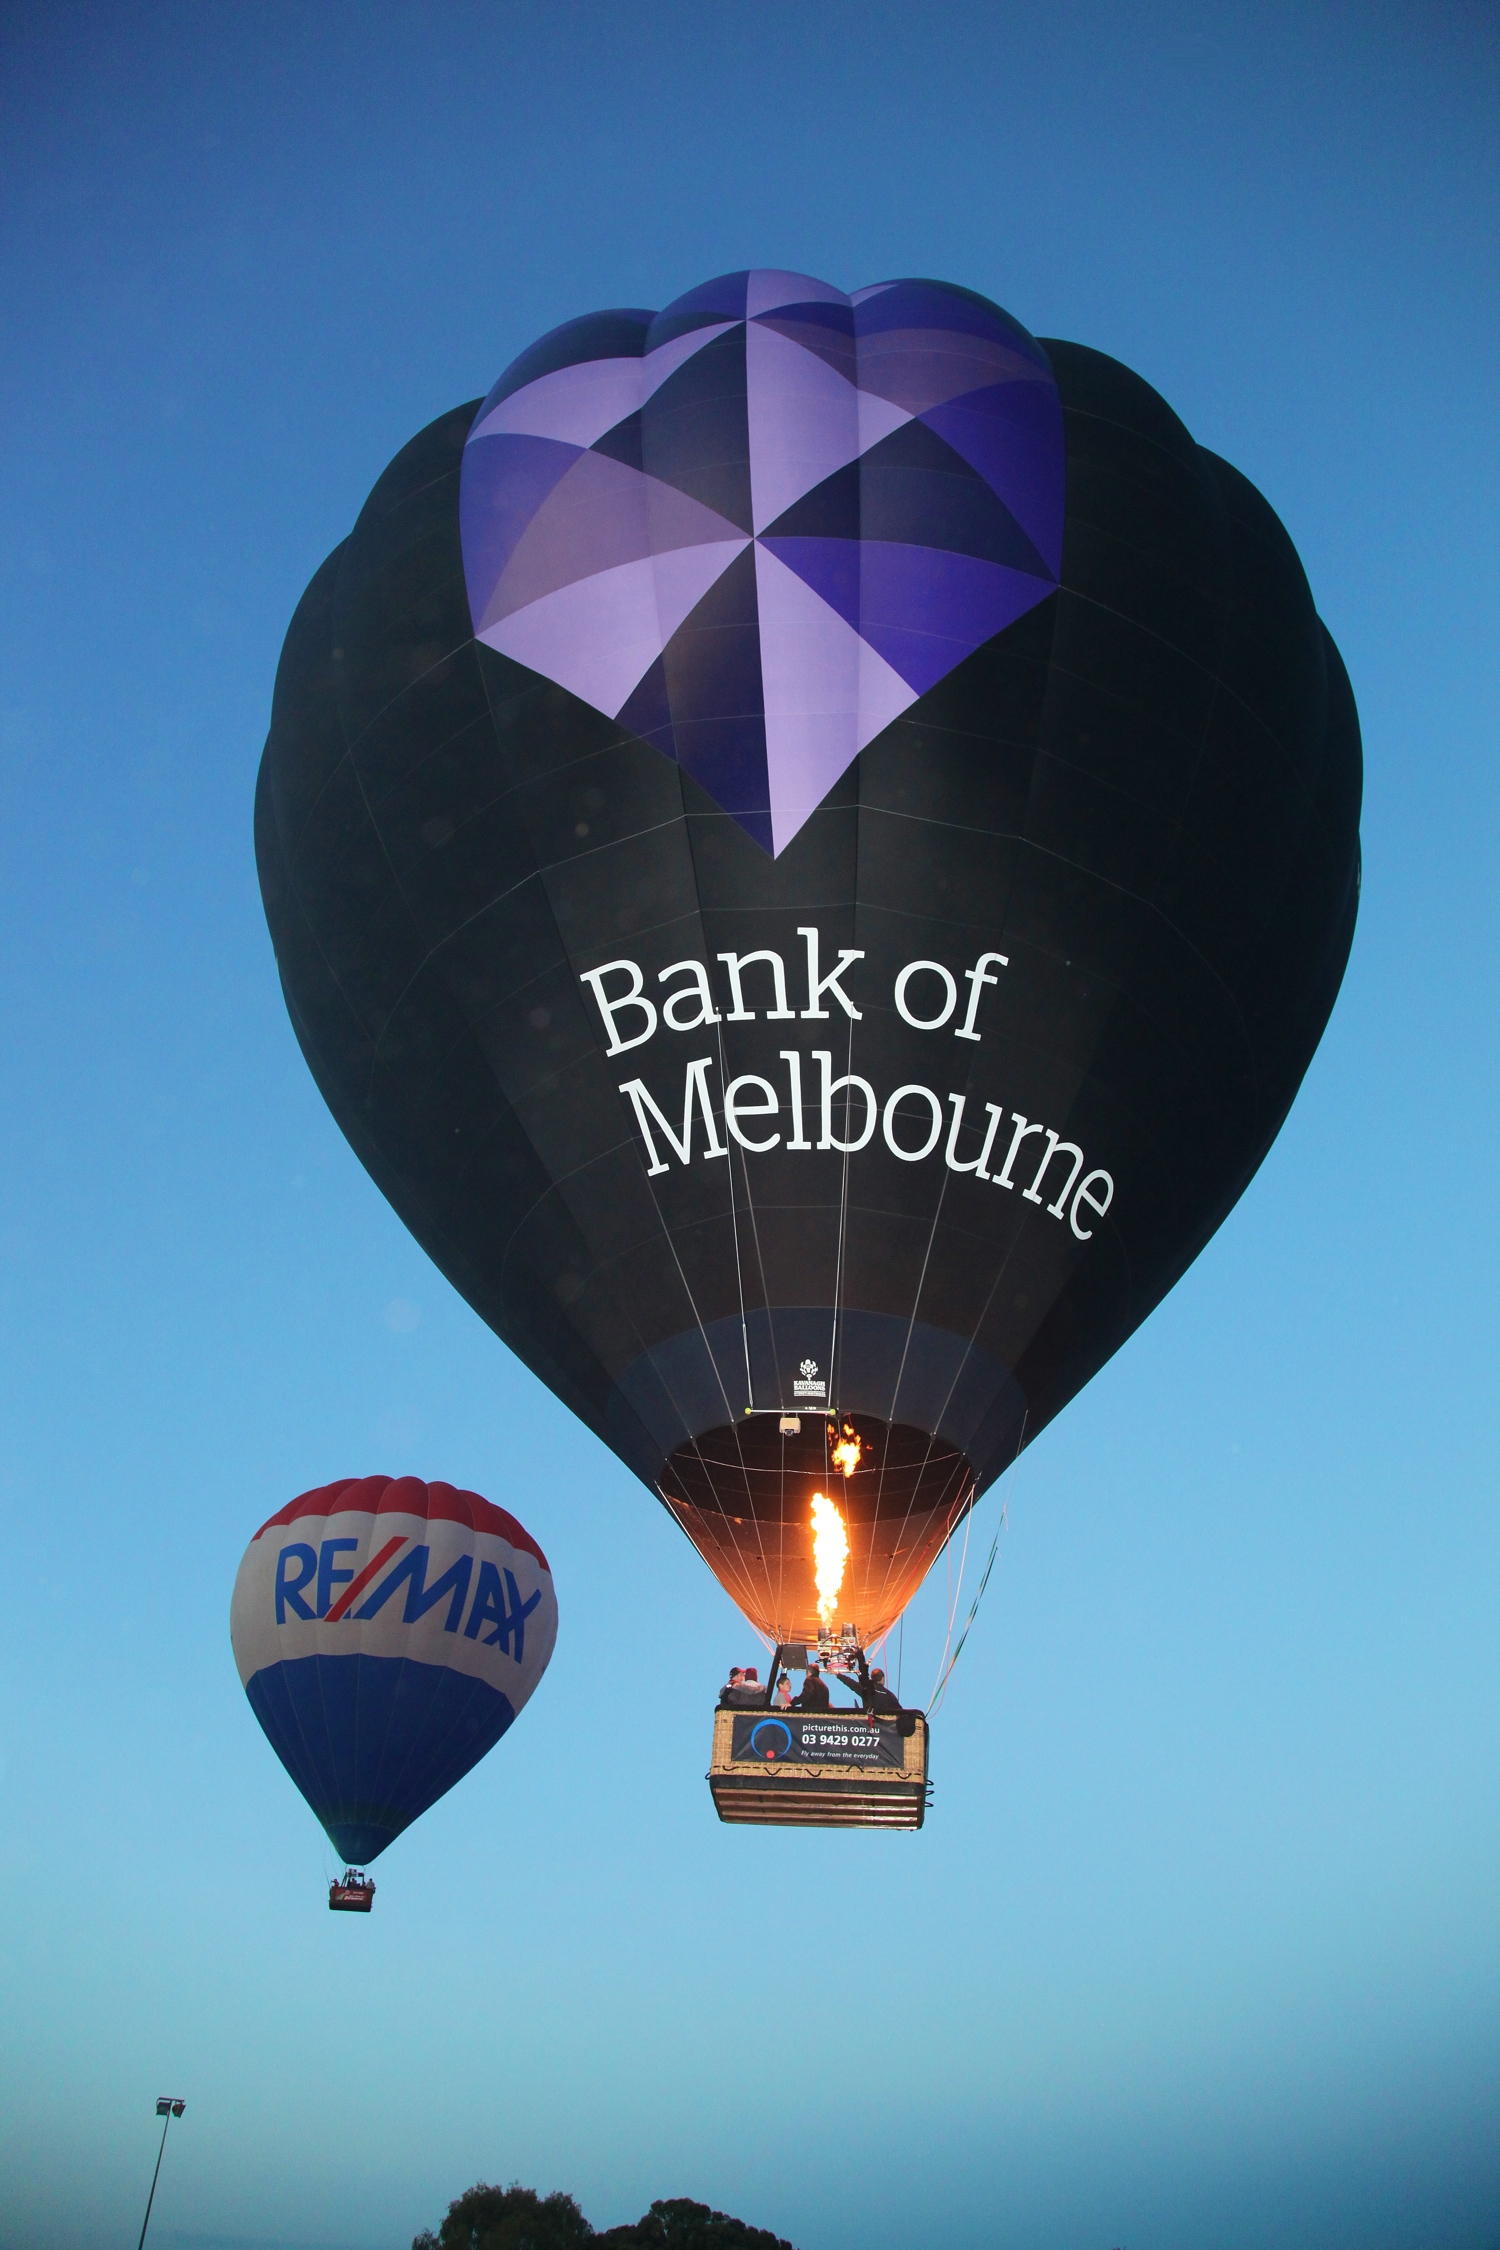 Bank of Melbourne hot air balloon with balloonman.jpeg